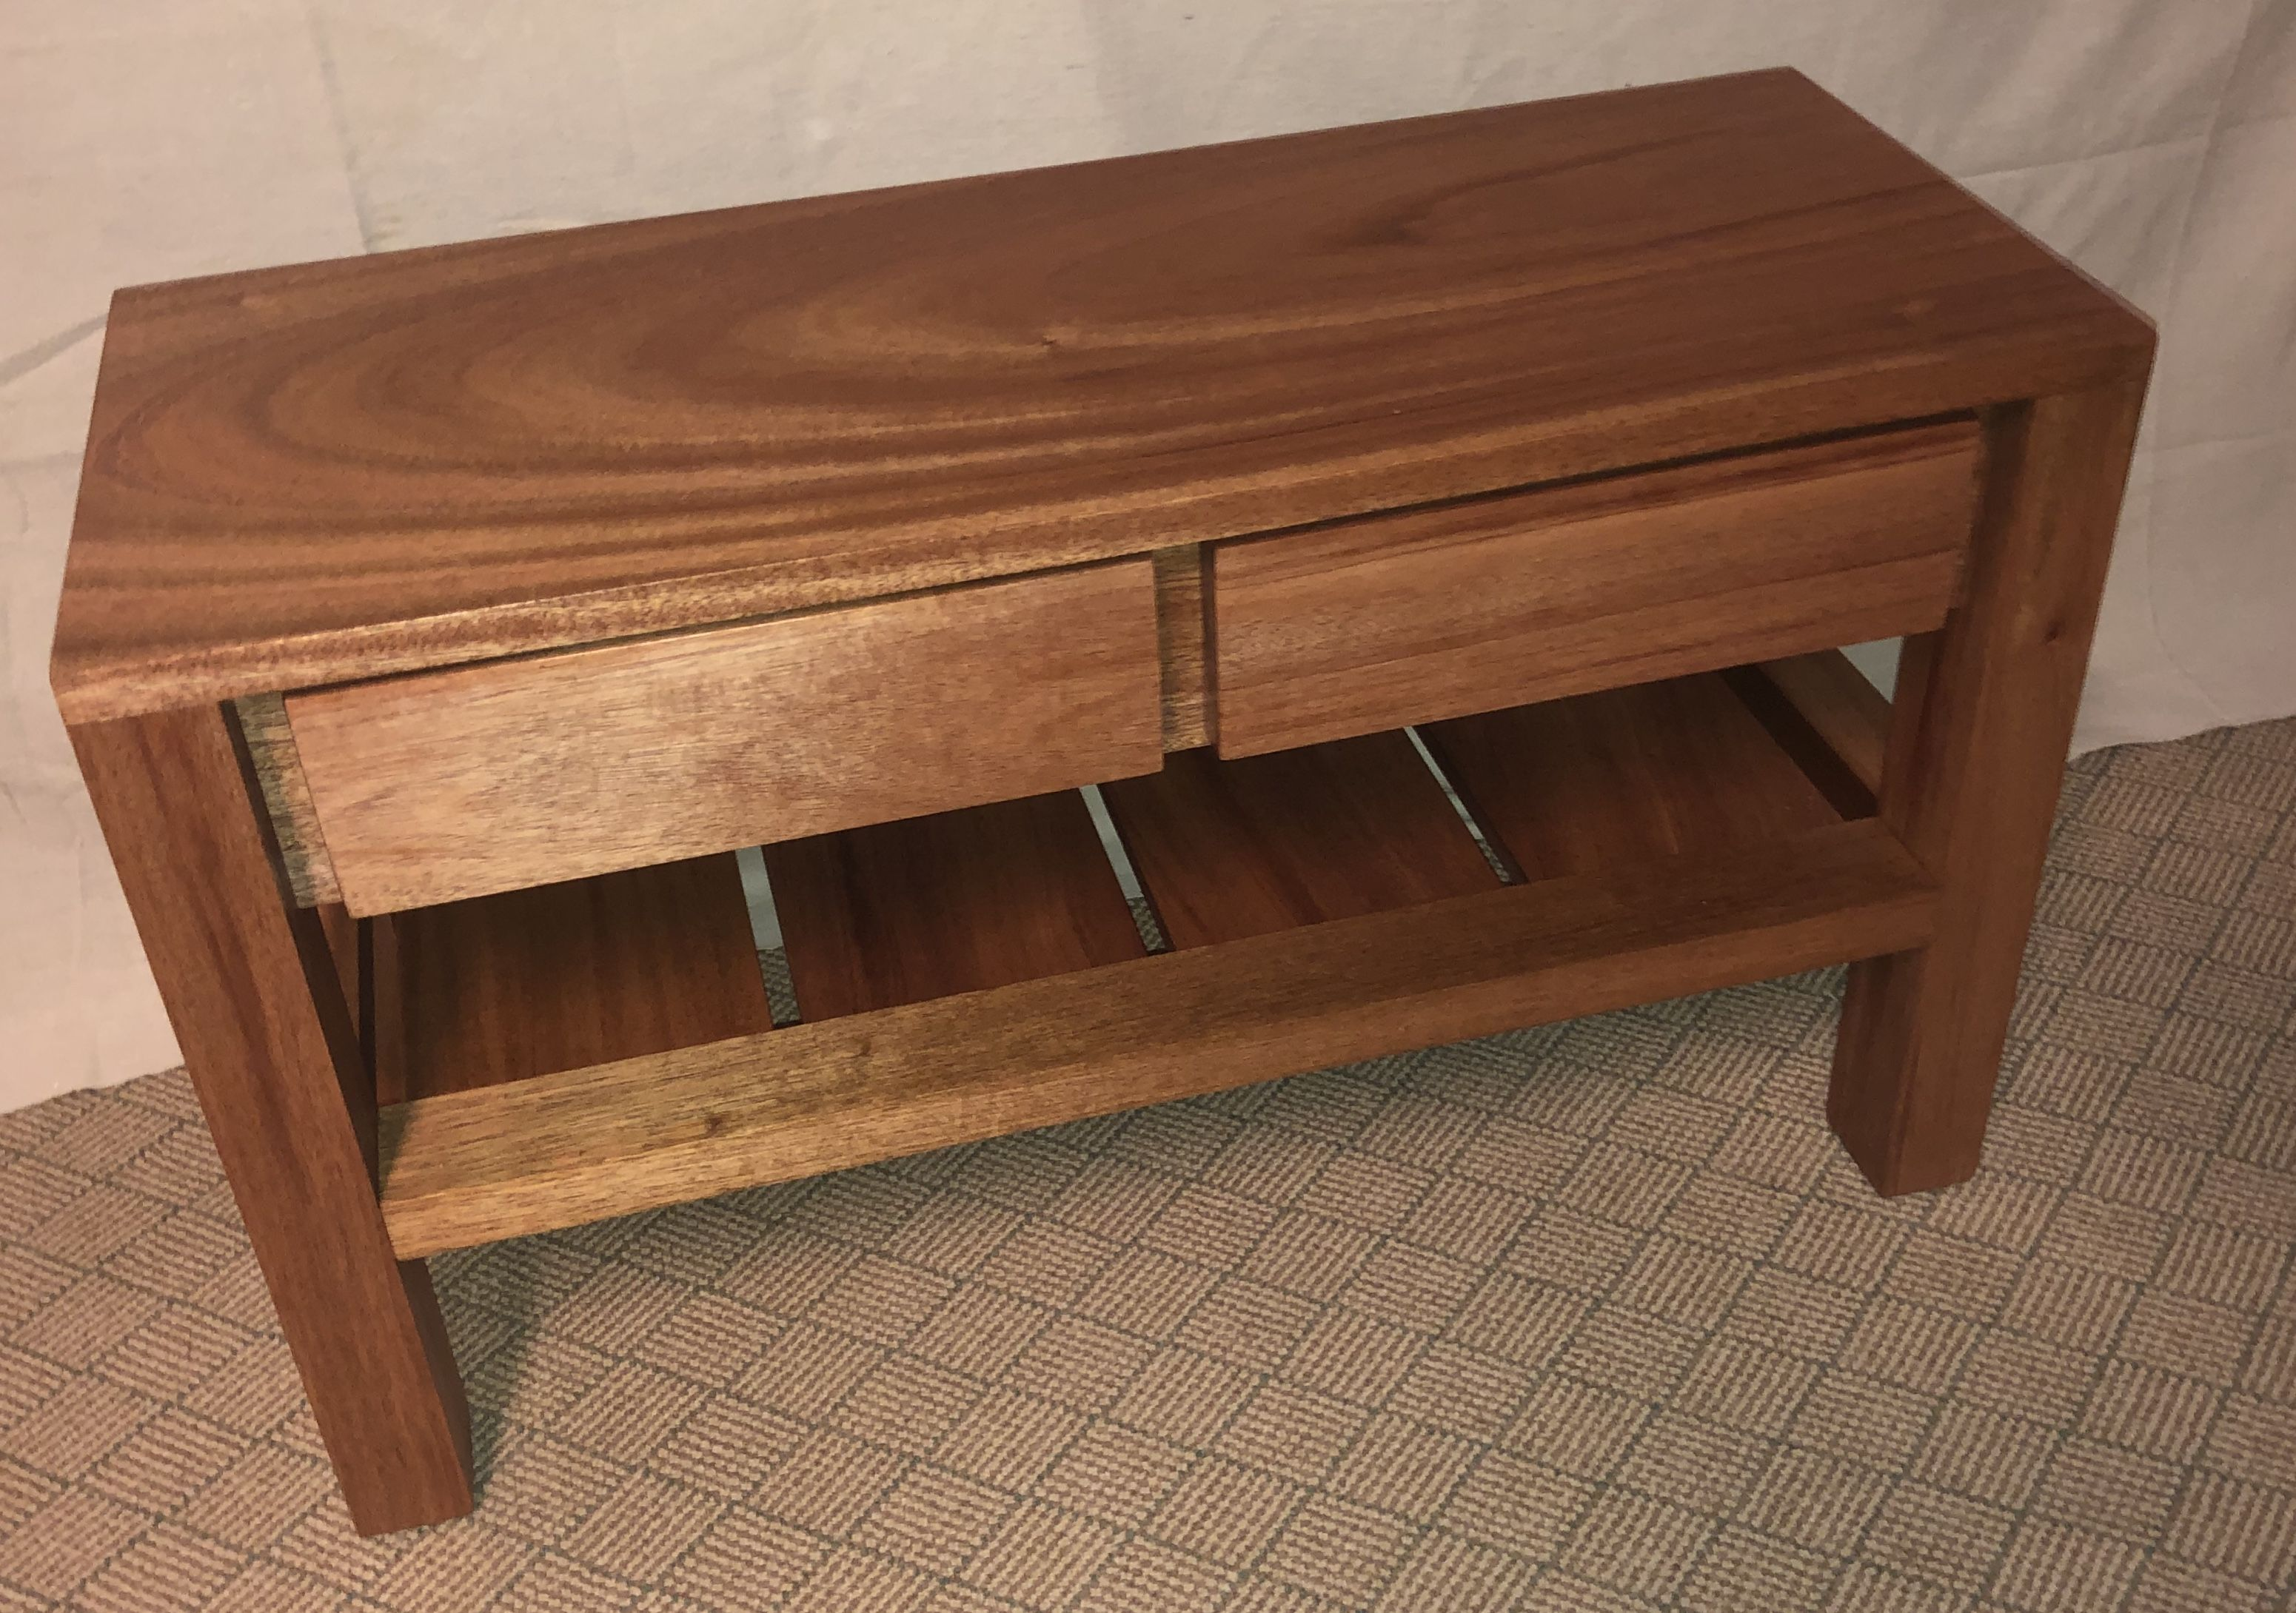 Storage Bench With Drawers Made From Solid Mahogany By Mr2 Woodworking Storage Bench Bench With Drawers Solid Mahogany